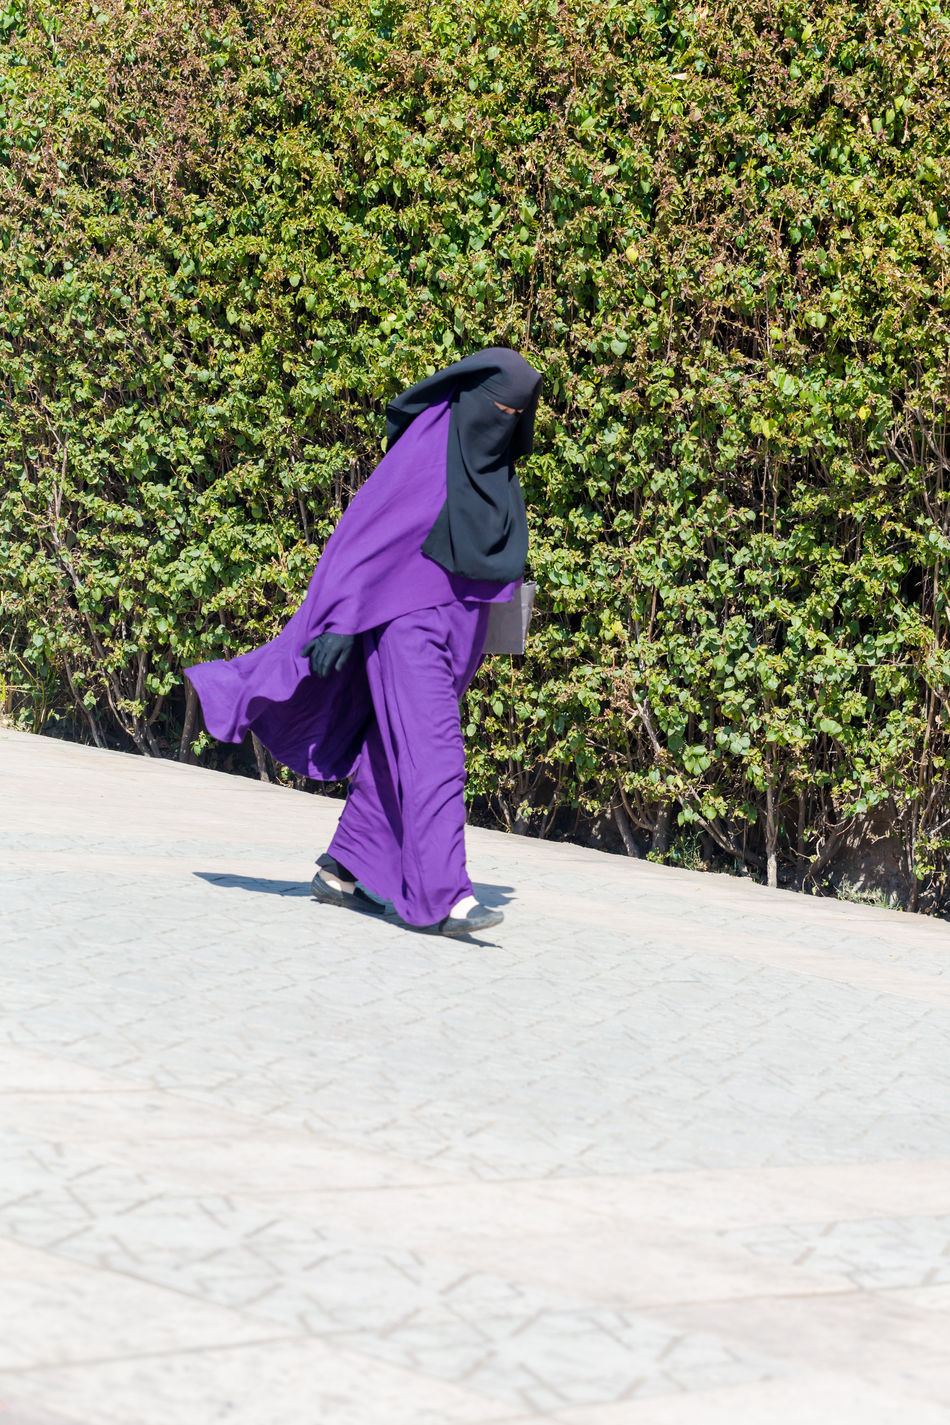 Islamic Muslim woman wearing violet black Niqab walks on Marrakesh street. 15 February 2017 Abaya Adults Only Alienation Assertion Chador Culture Difference  Green Color Hijab Iconic Islam Jilbab Lifestyle Marrakech Migrant Muslim One Woman Only Only Women Oppression Real People Religion And Beliefs Seperation Street Traditional Clothing Violet